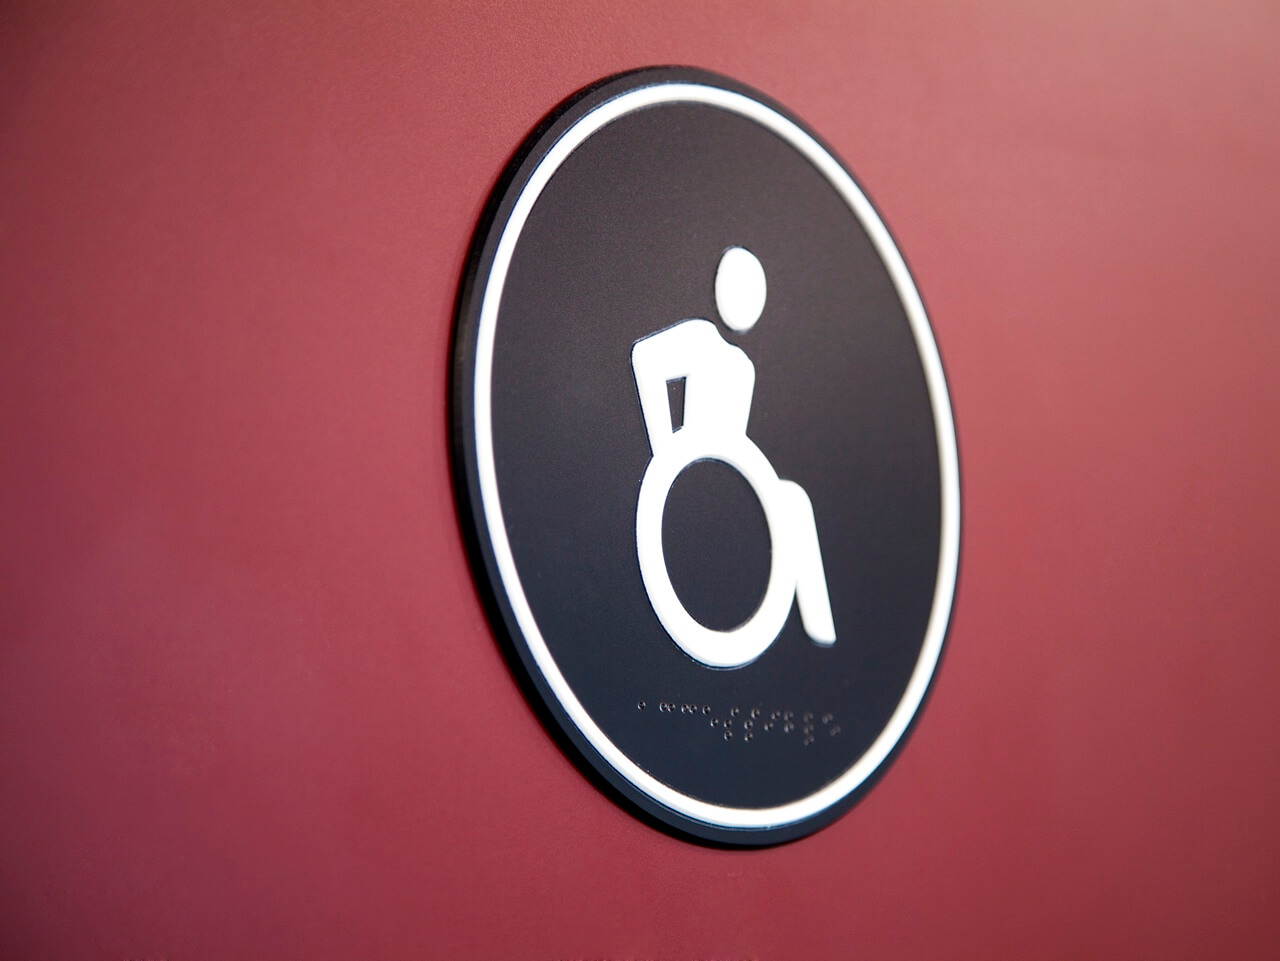 Accessible toilet signage and wayfinding pictogram with Braille